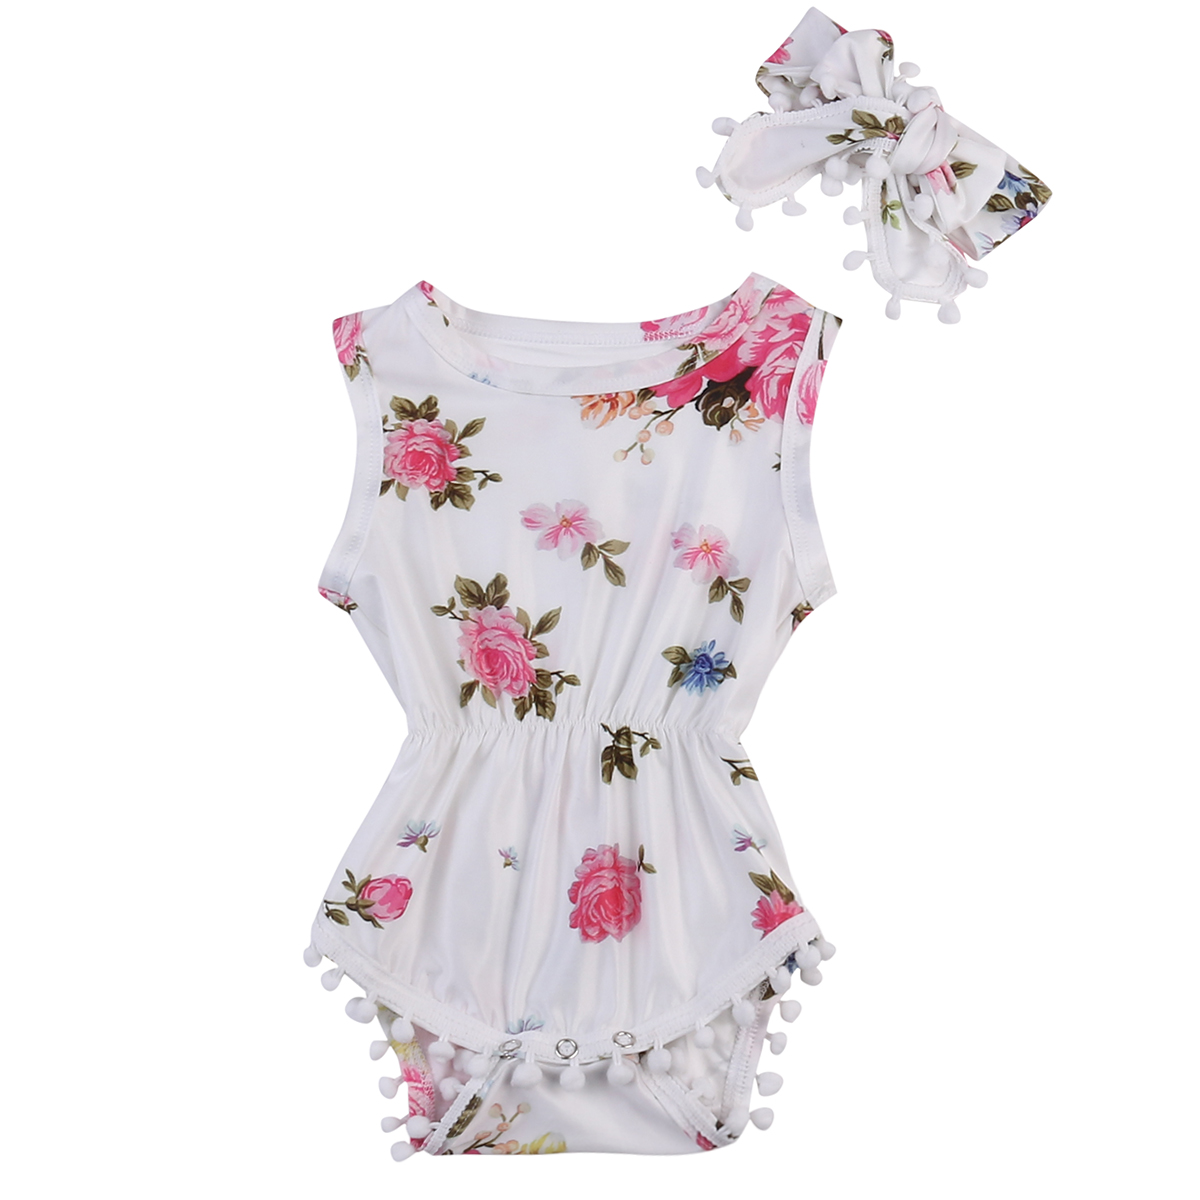 2Pcs Sets Infant Baby Girl Clothes Floral Sleeveless Romper+Headband Kids baby Cute Summer Sunsuit Outfit